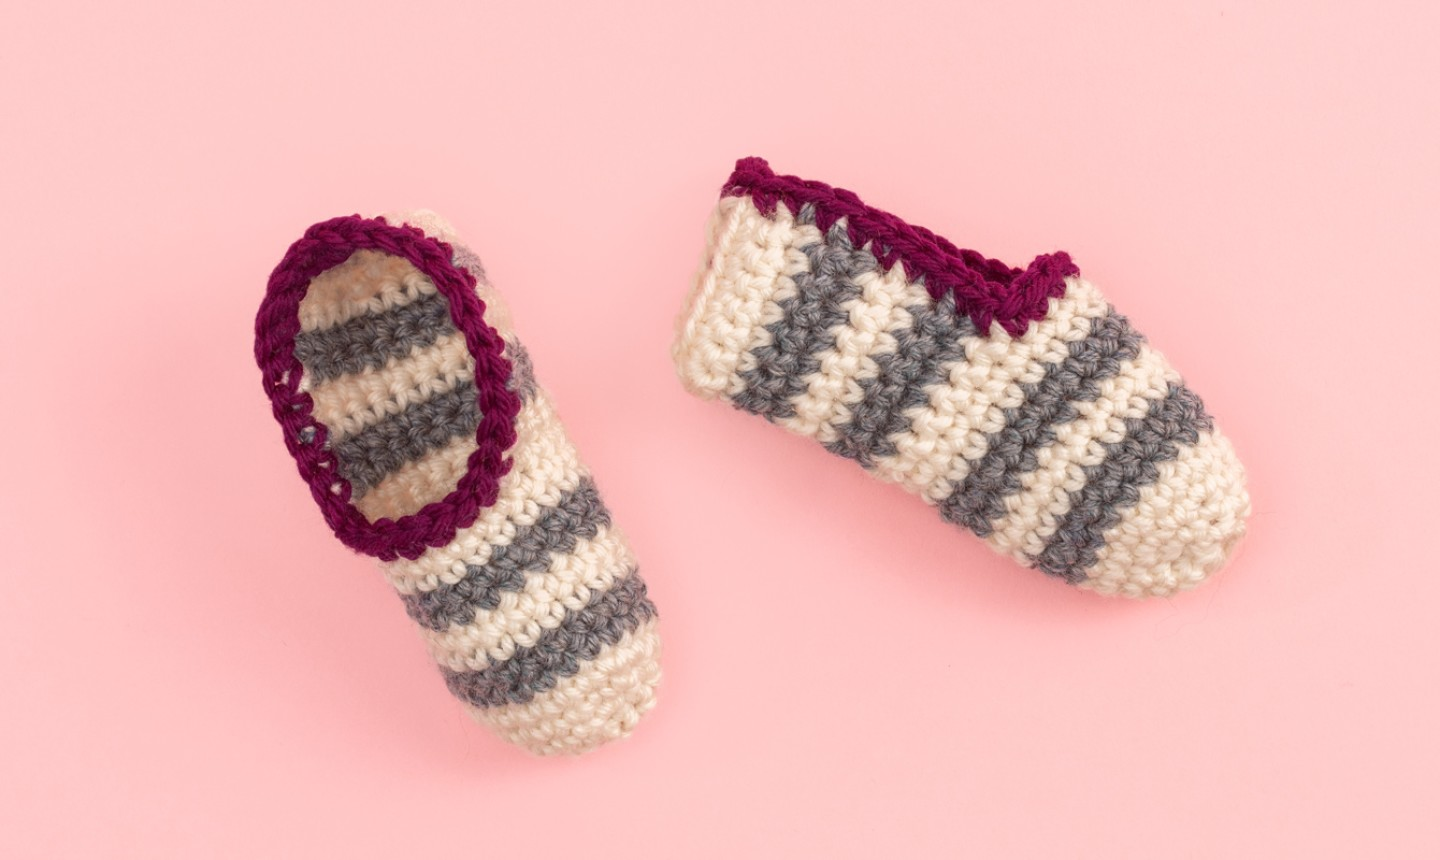 white and gray striped crochet baby booties